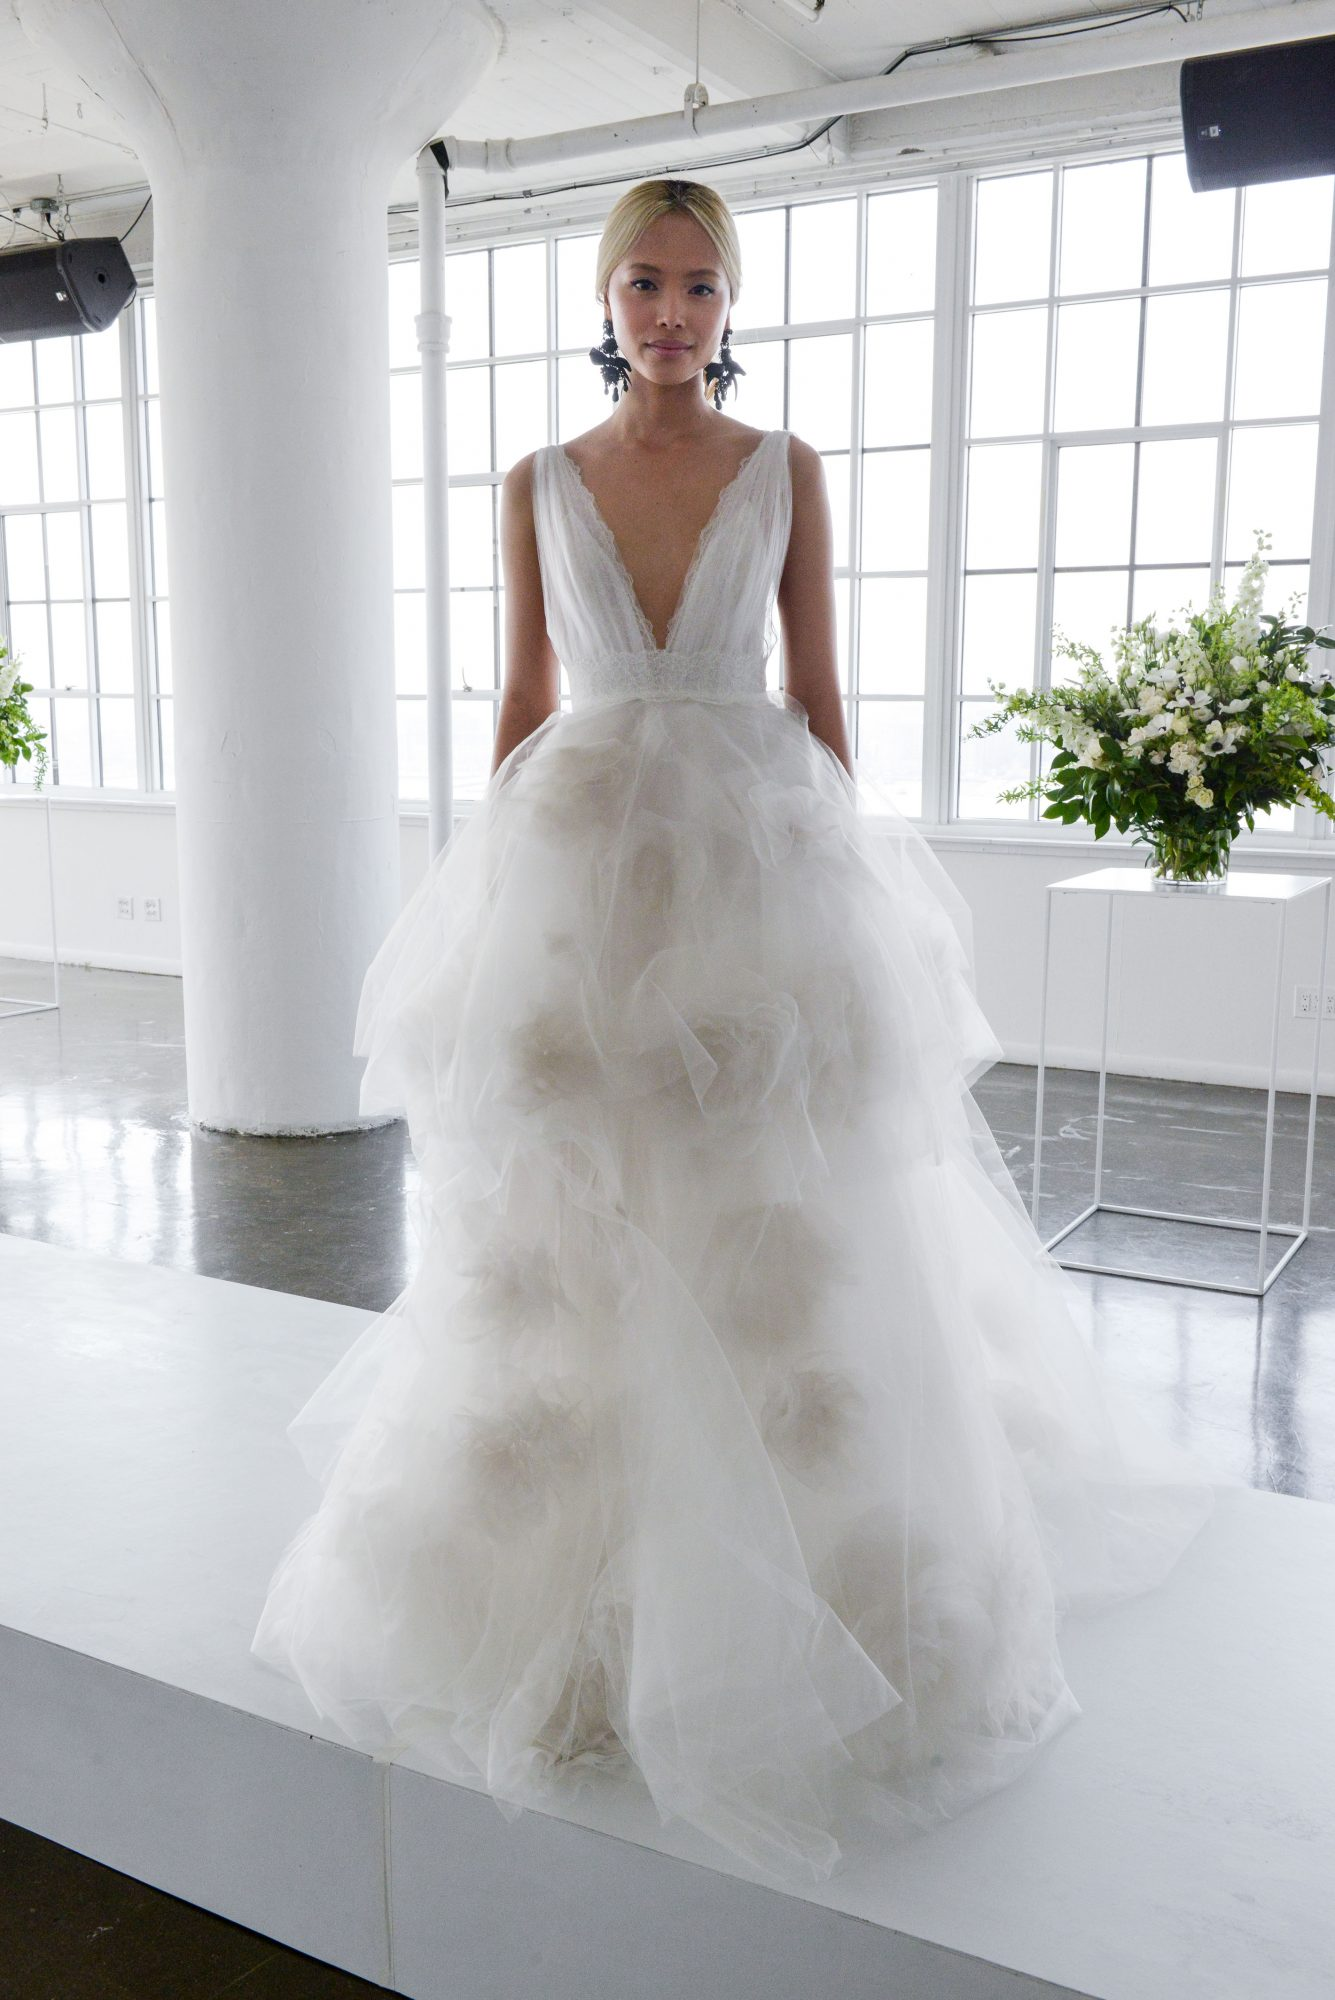 marchesa spring 2018 ball gown wedding dress with full skirt and v-neckline